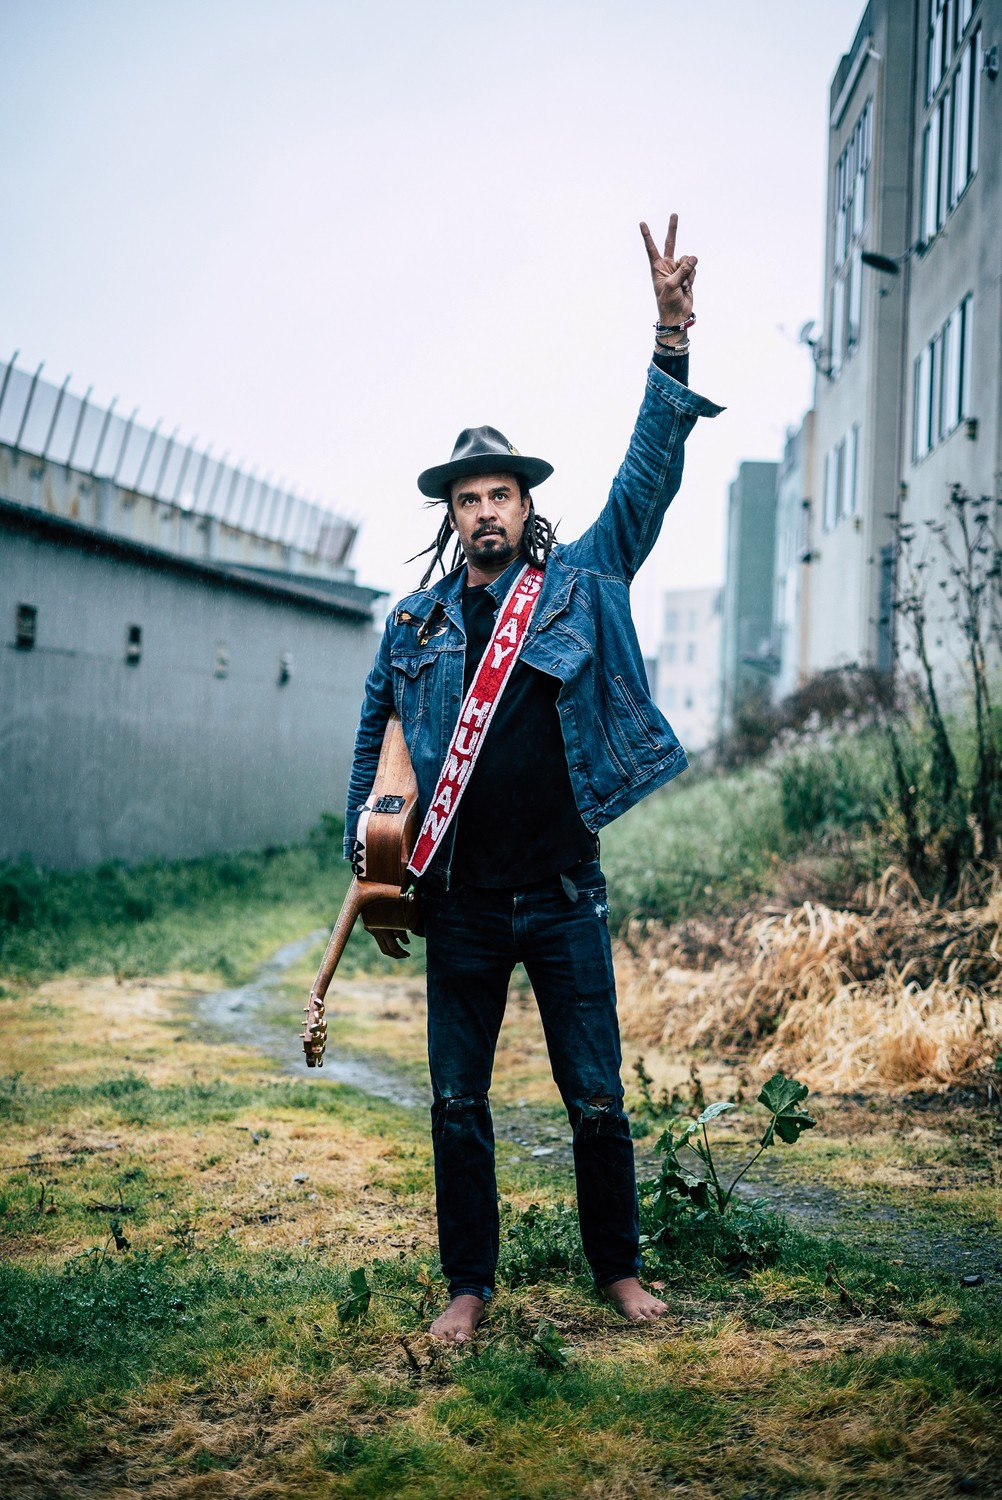 The Michael Franti & Spearhead concert on Saturday, Oct. 27, 2018 has been moved from the Backyard Stage to the Main Stage at the St. Augustine Amphitheatre, to accommodate more fans.